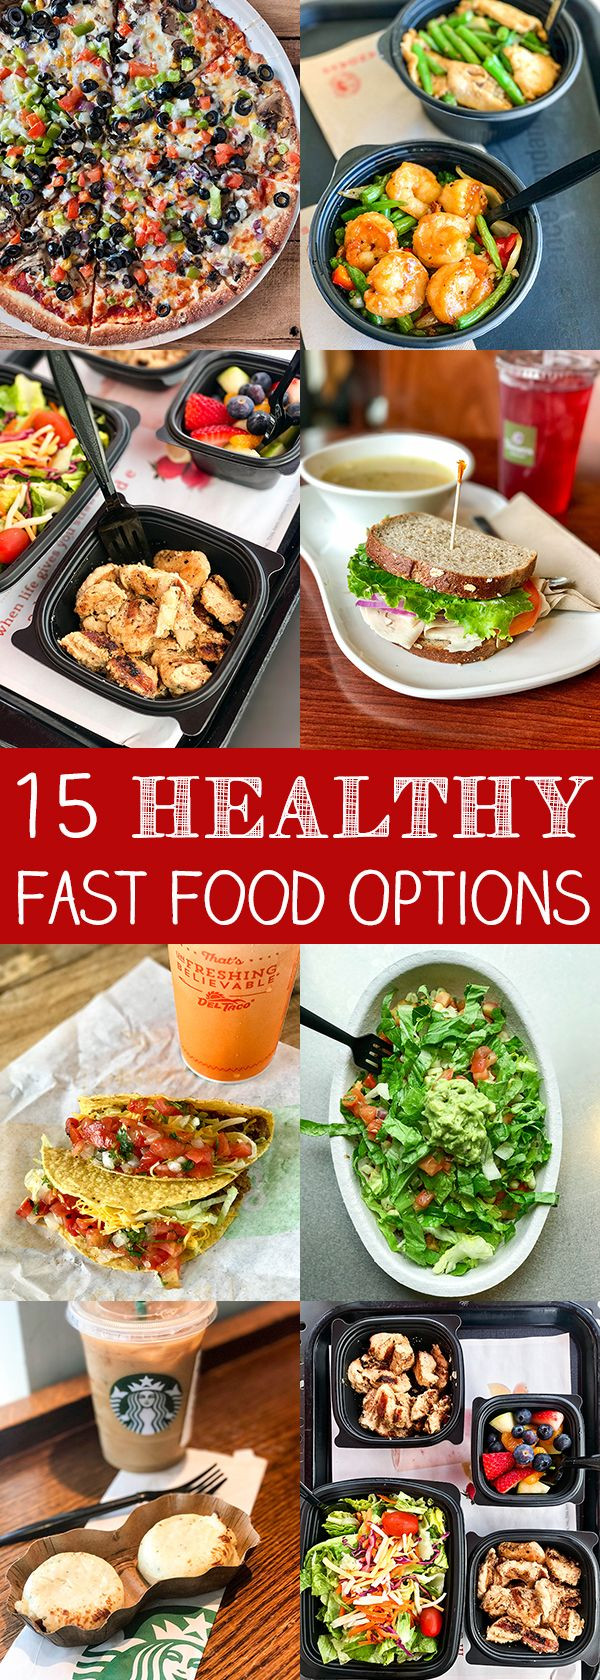 Healthy Fast Food Breakfast  15 Healthy Fast Food Options